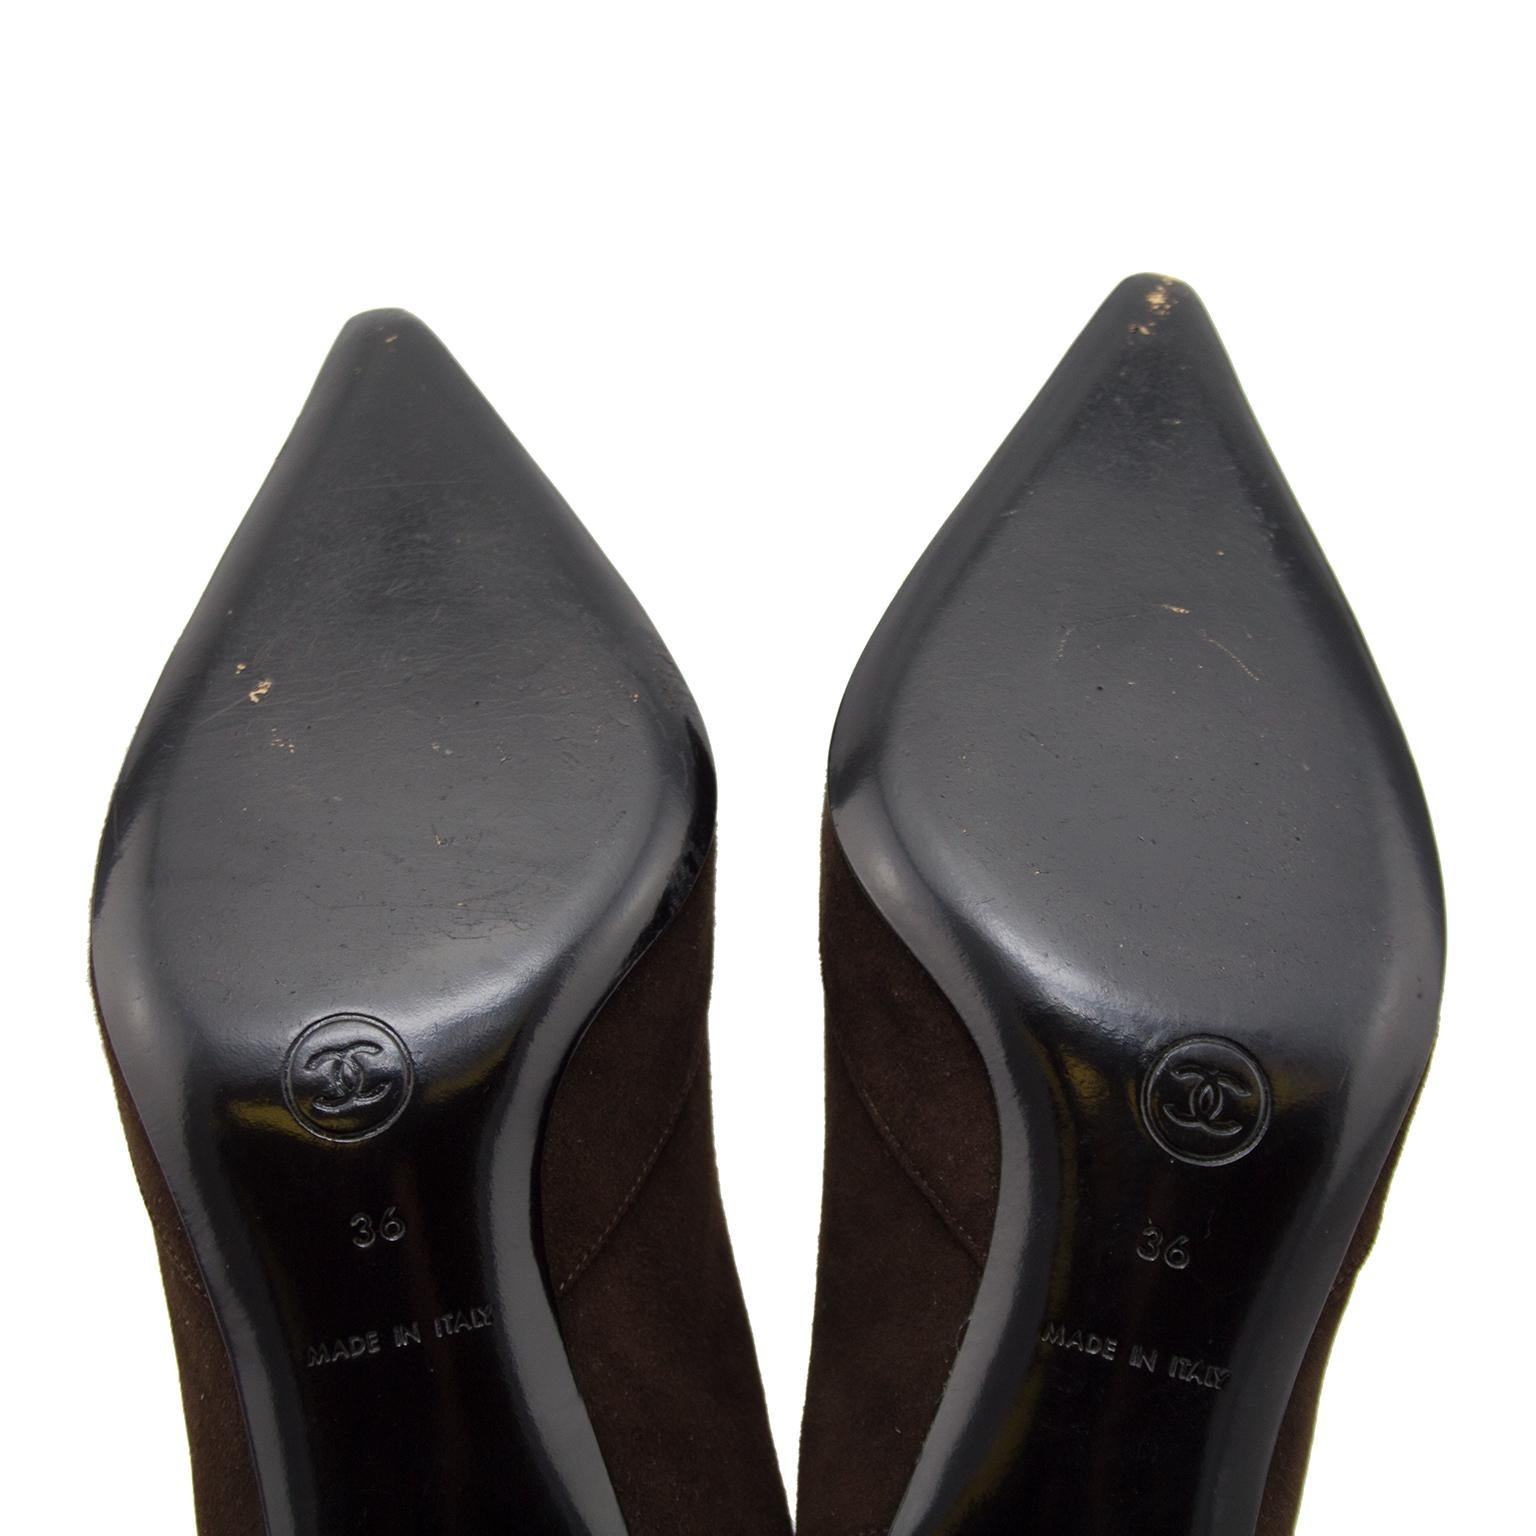 636afbf42f5 Late 1990s Chanel Brown Suede Pointed Toe Sling Back Kitten Heels For Sale  at 1stdibs